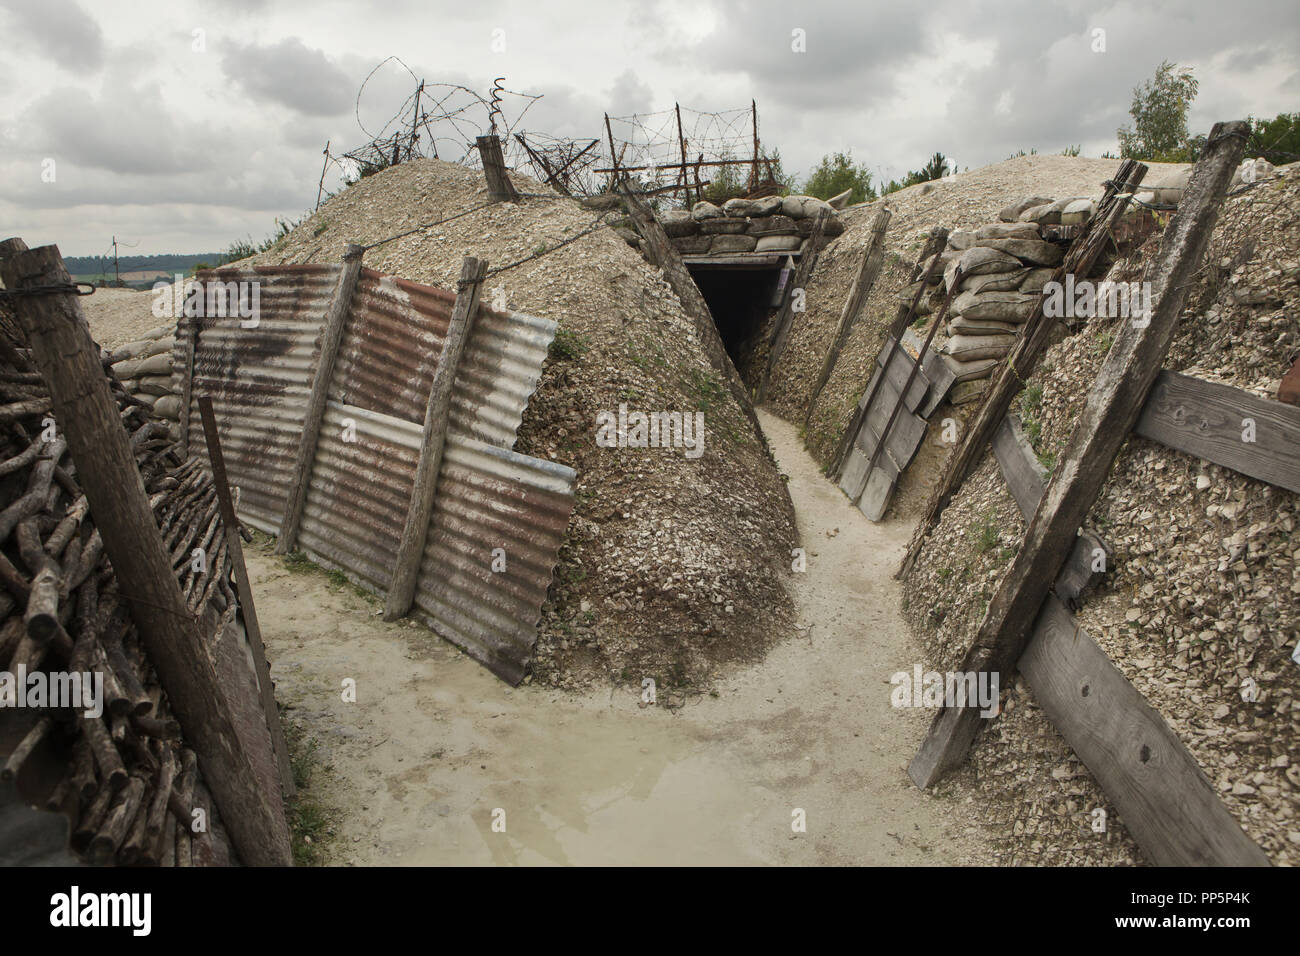 Trench with barbed wire entanglements used during the First World War in the Main de Massiges in Marne region in north-eastern France. The Main de Massiges was one of the major sites of the First World War from 1914 to 1918. The trench of German origin was conquered by the 23rd Colonial Infantry Regiment of the French Army on 25 September 1915 and was the first line of French defence from September to October 1915. Trenches and barbed wire entanglements in the area are restored by the Main de Massiges Association since 2009. - Stock Image